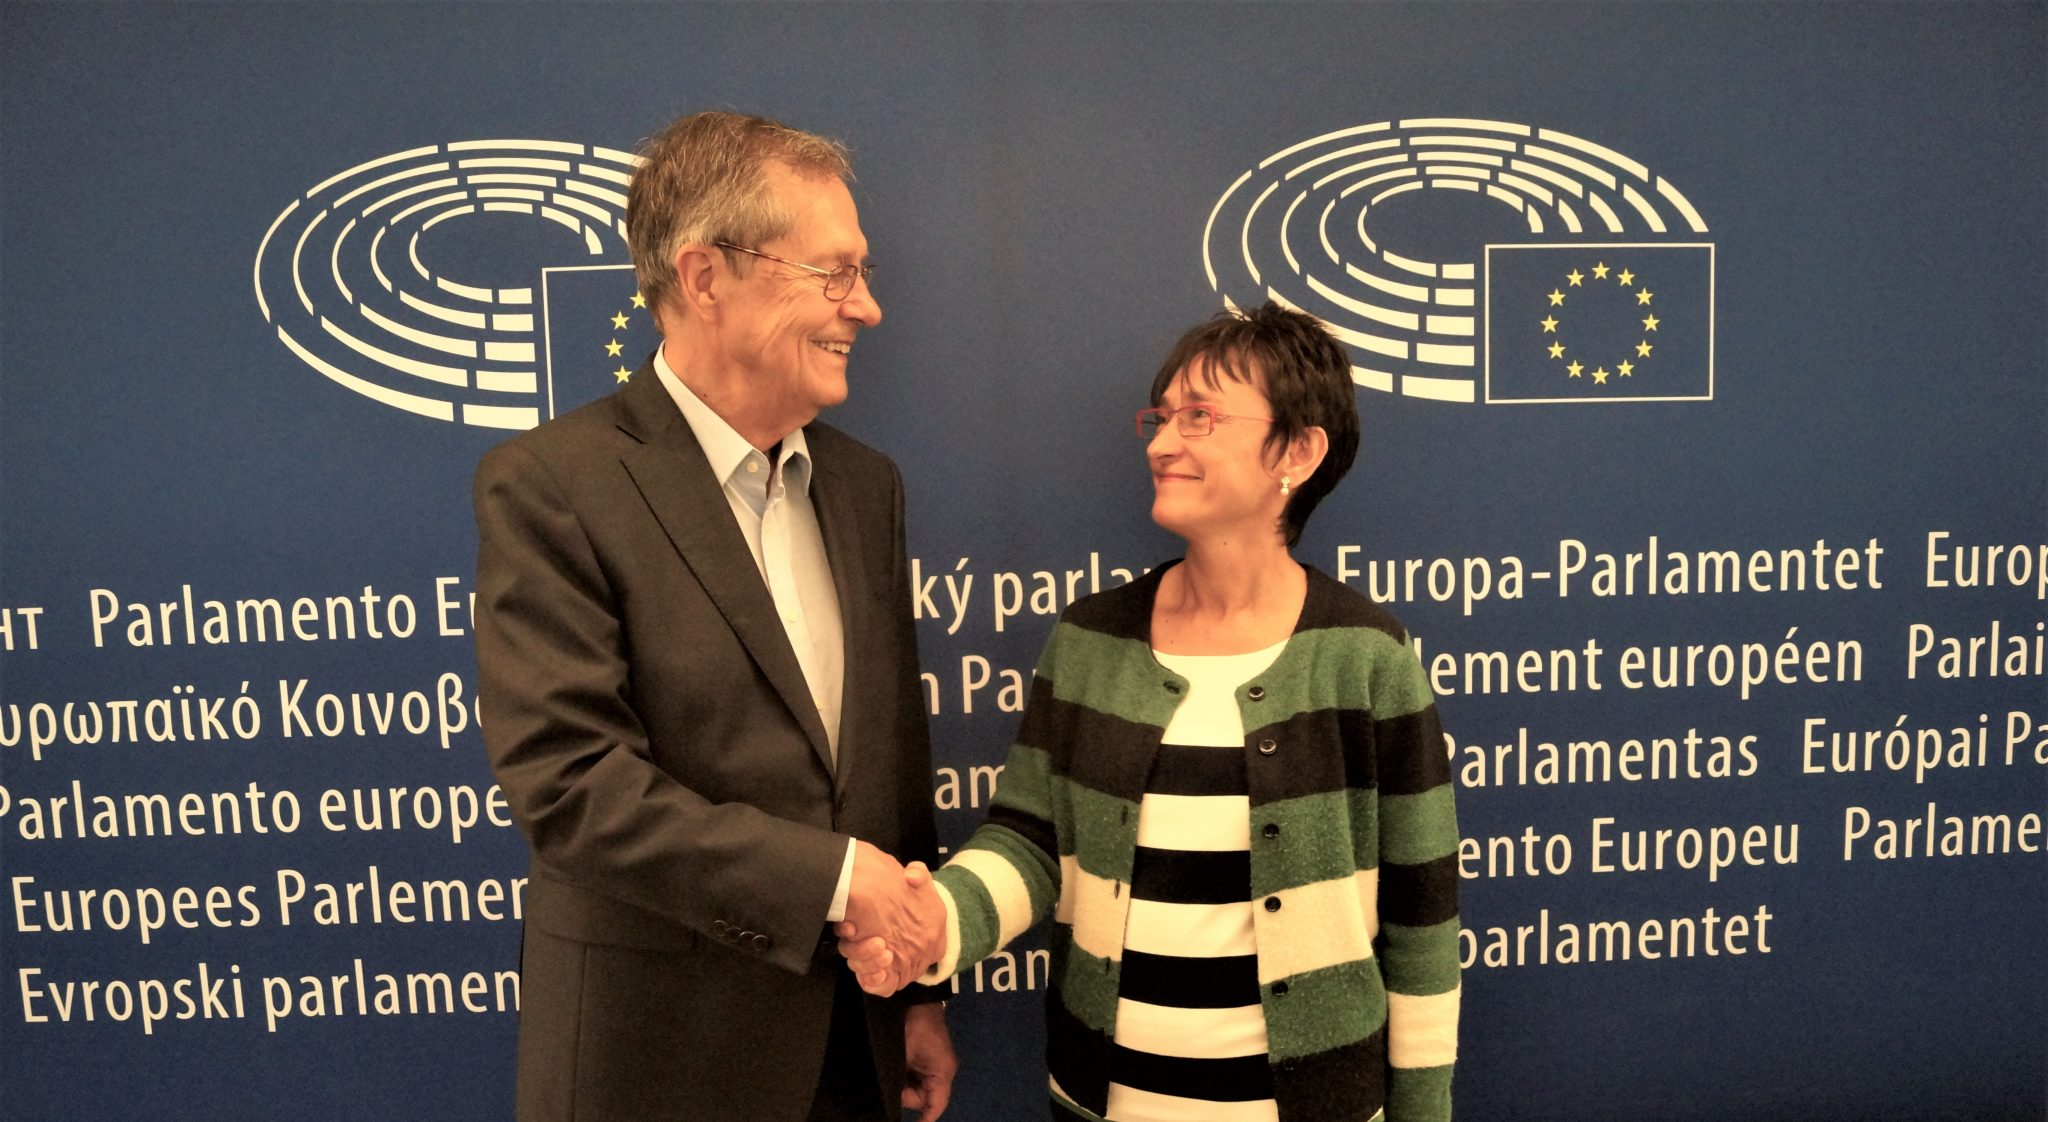 MEP Klaus Buchner joins EFA party as an individual member